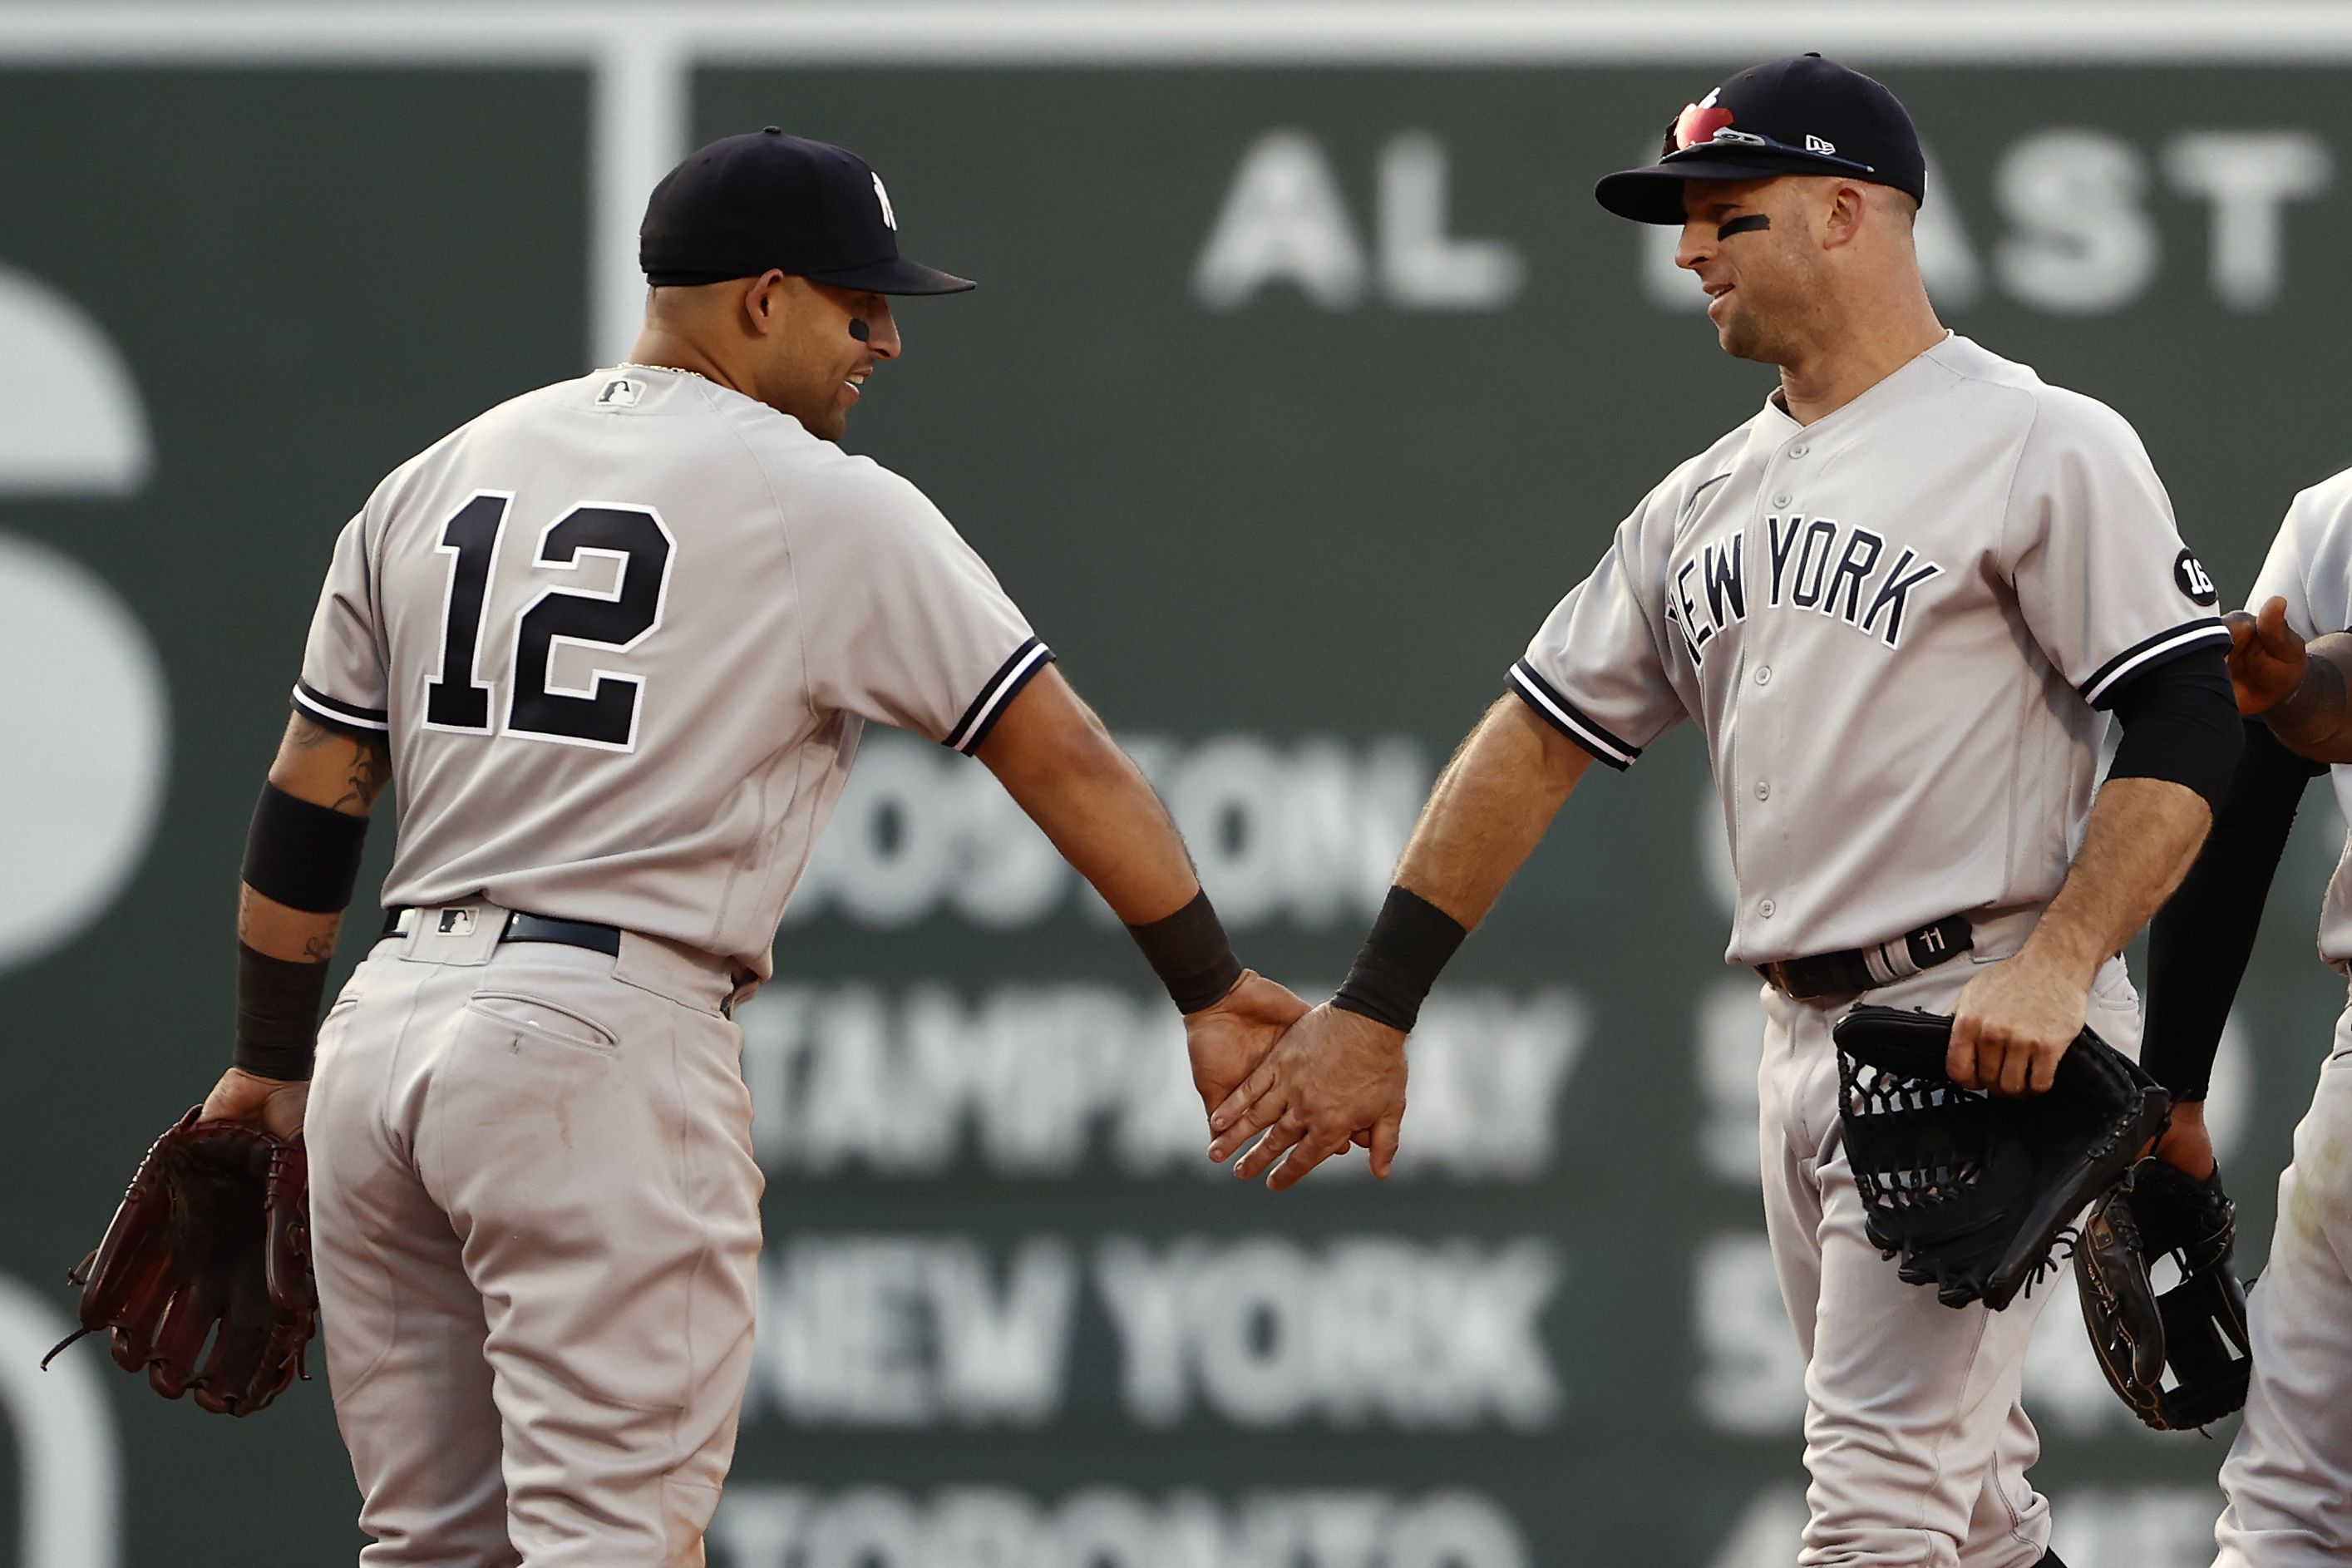 Rougned Odor of the New York Yankees and Brett Gardner congratulate each other after their 4-3 win over the Boston Red Sox at Fenway Park on July 24, 2021 in Boston, Massachusetts.